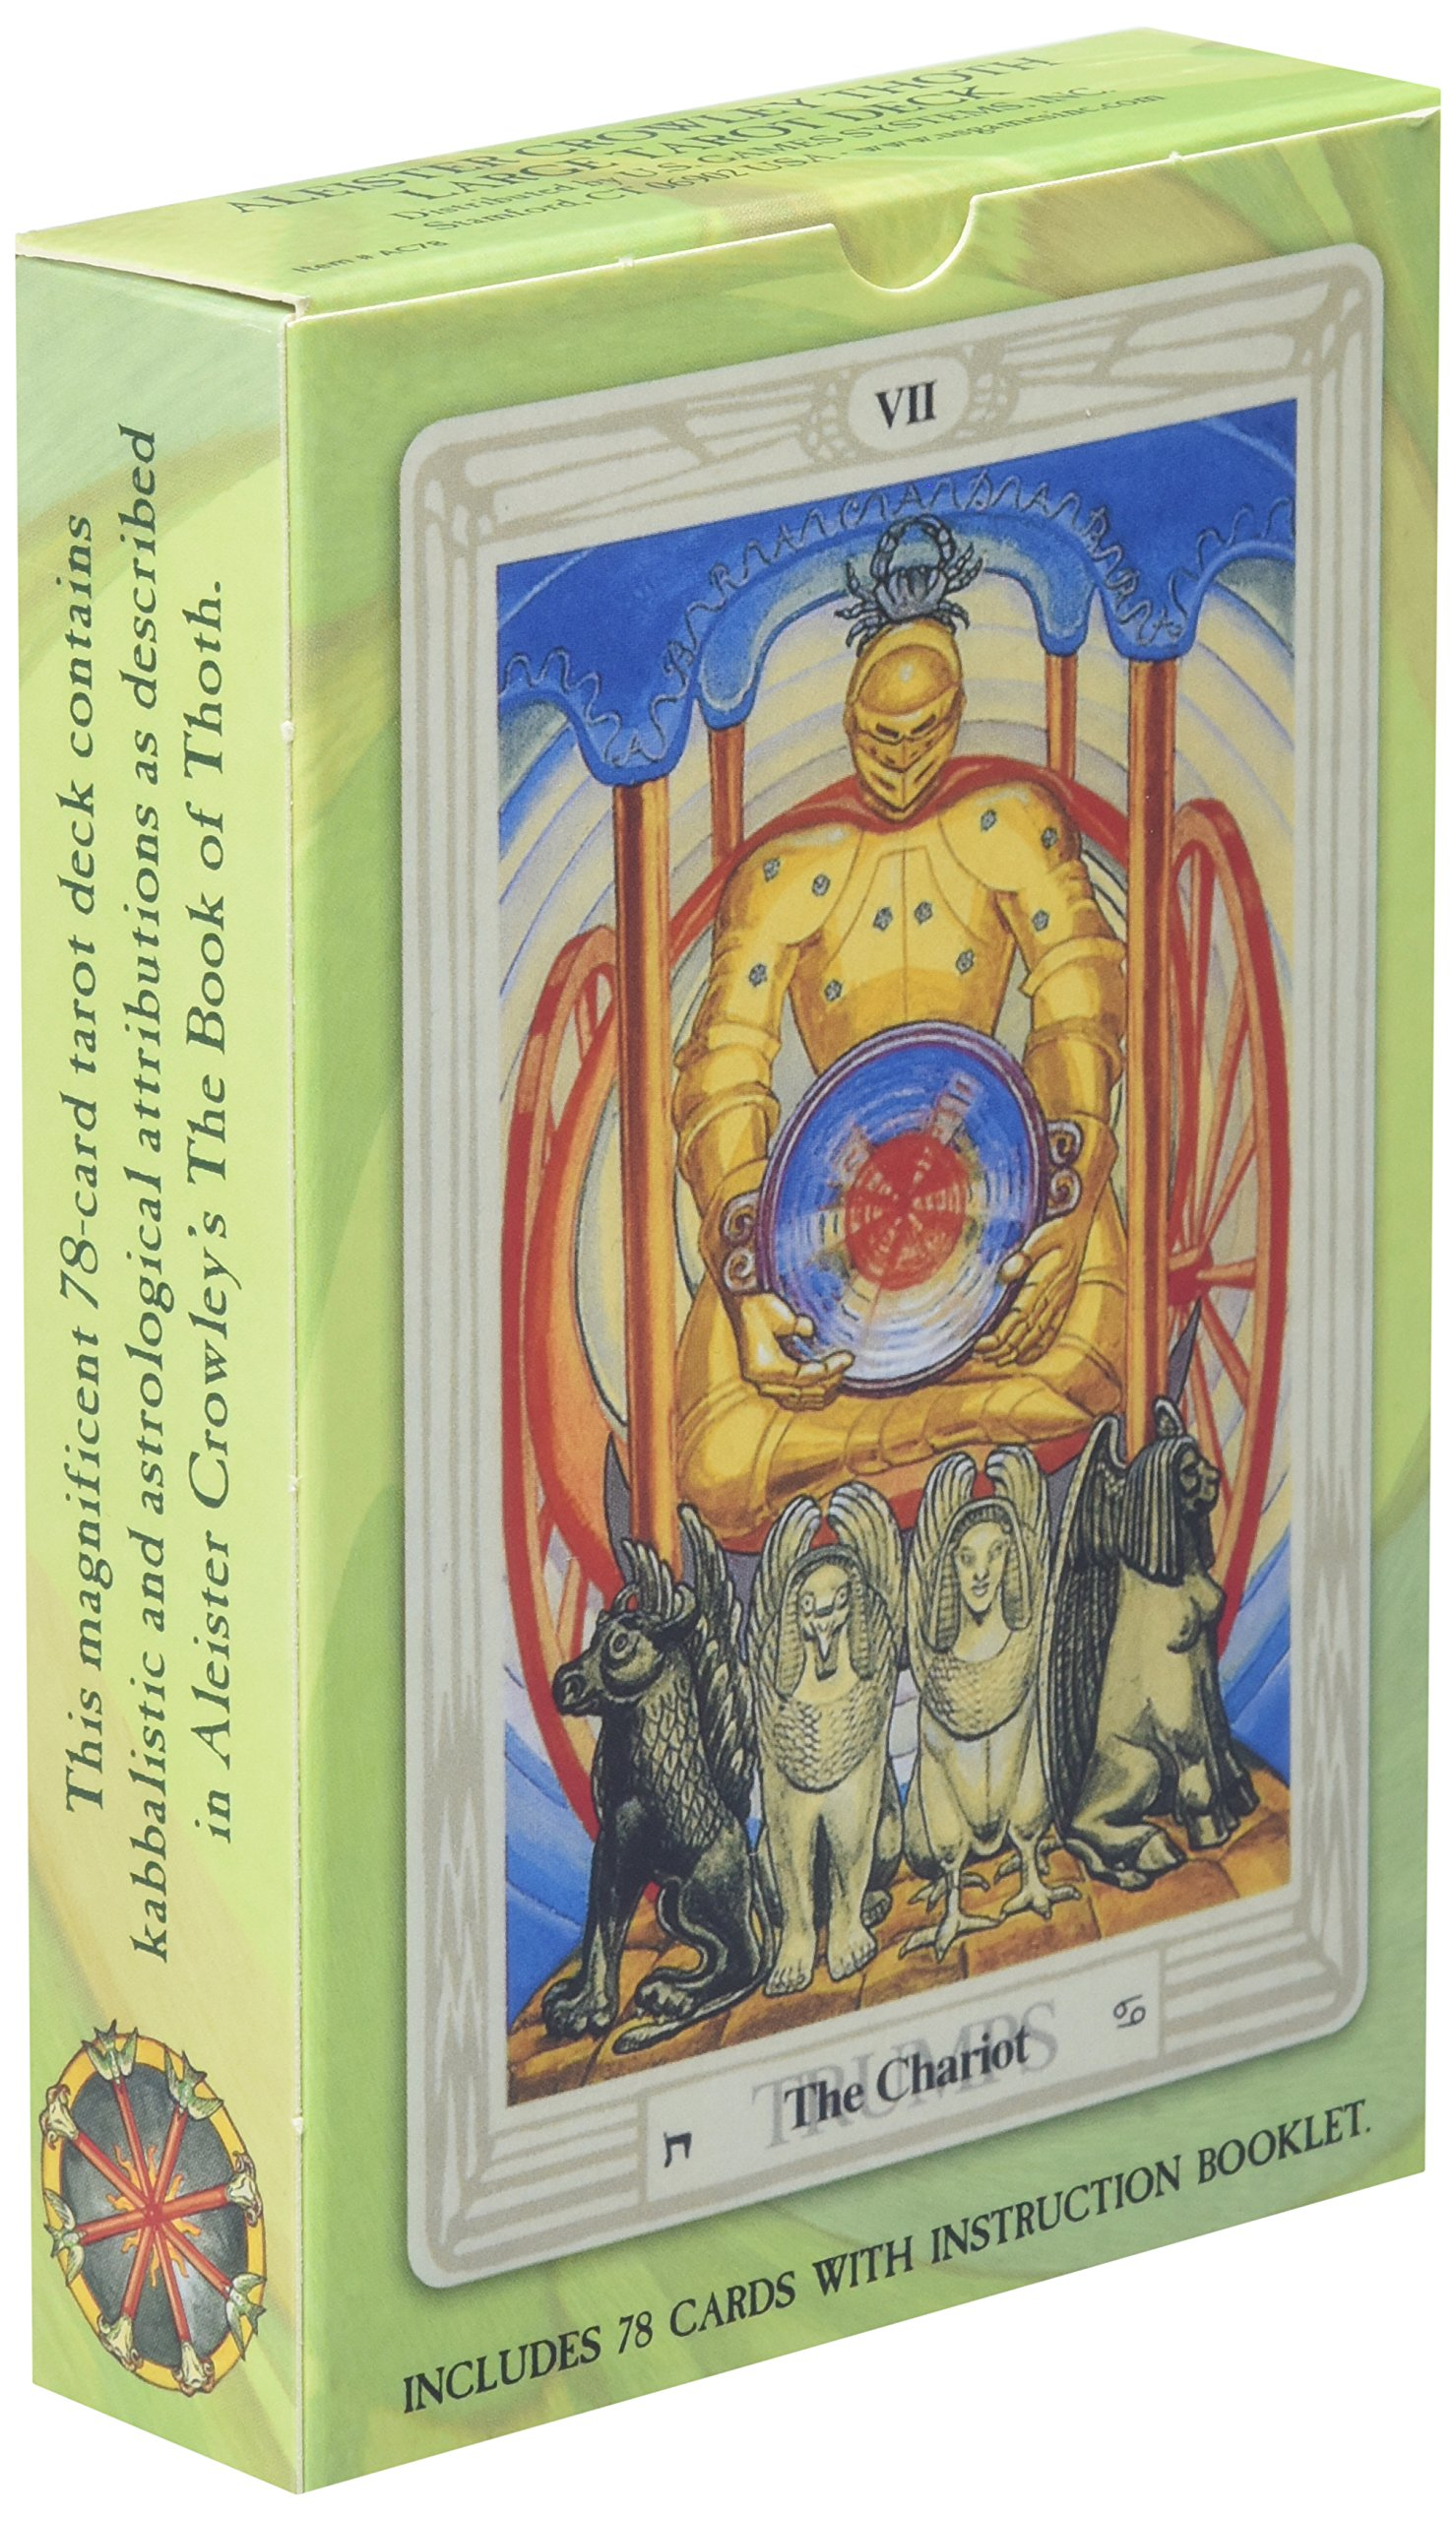 Crowley Thoth Tarot Deck Standard: Amazon.es: Aleister ...